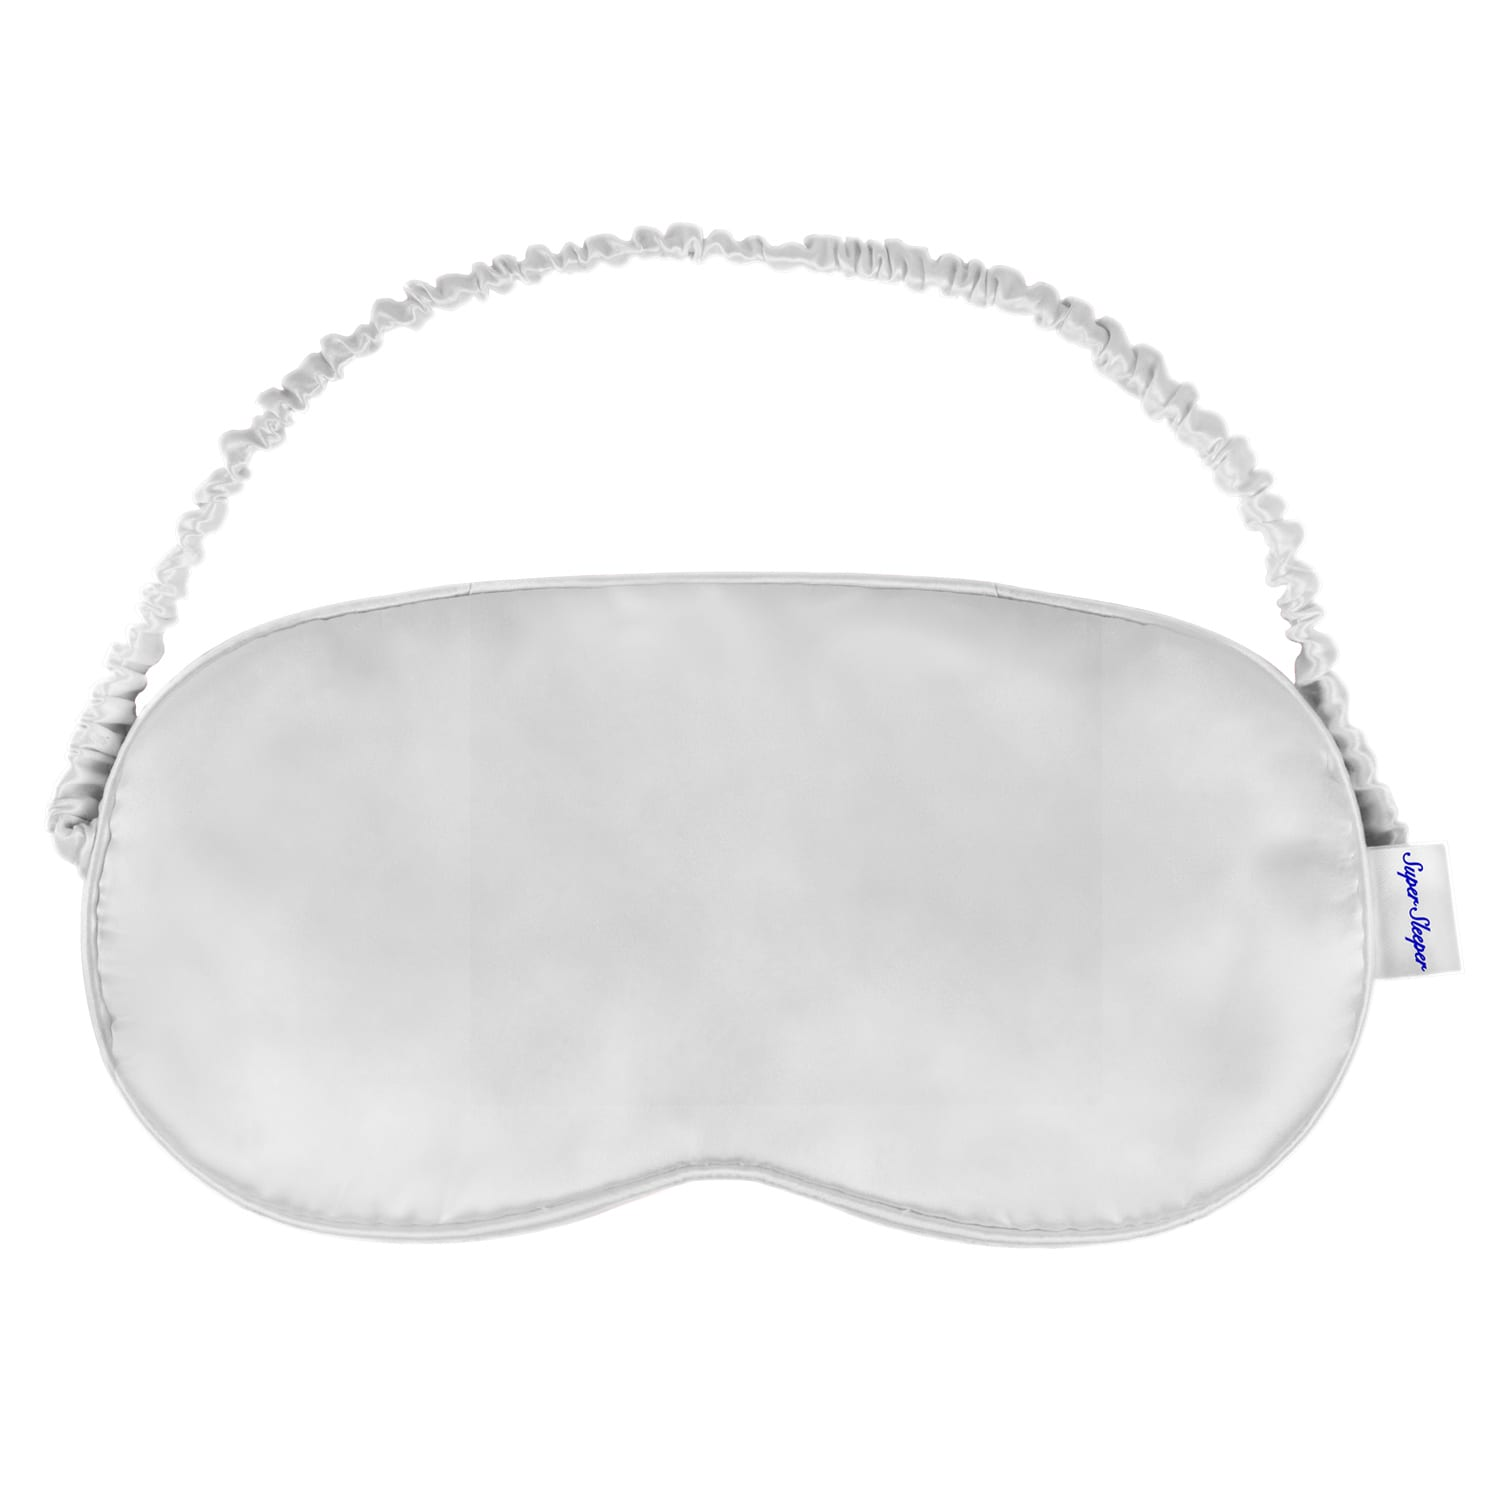 Silver Pearl Youth Silk Pillow Eye Mask 100% Mulberry Silk